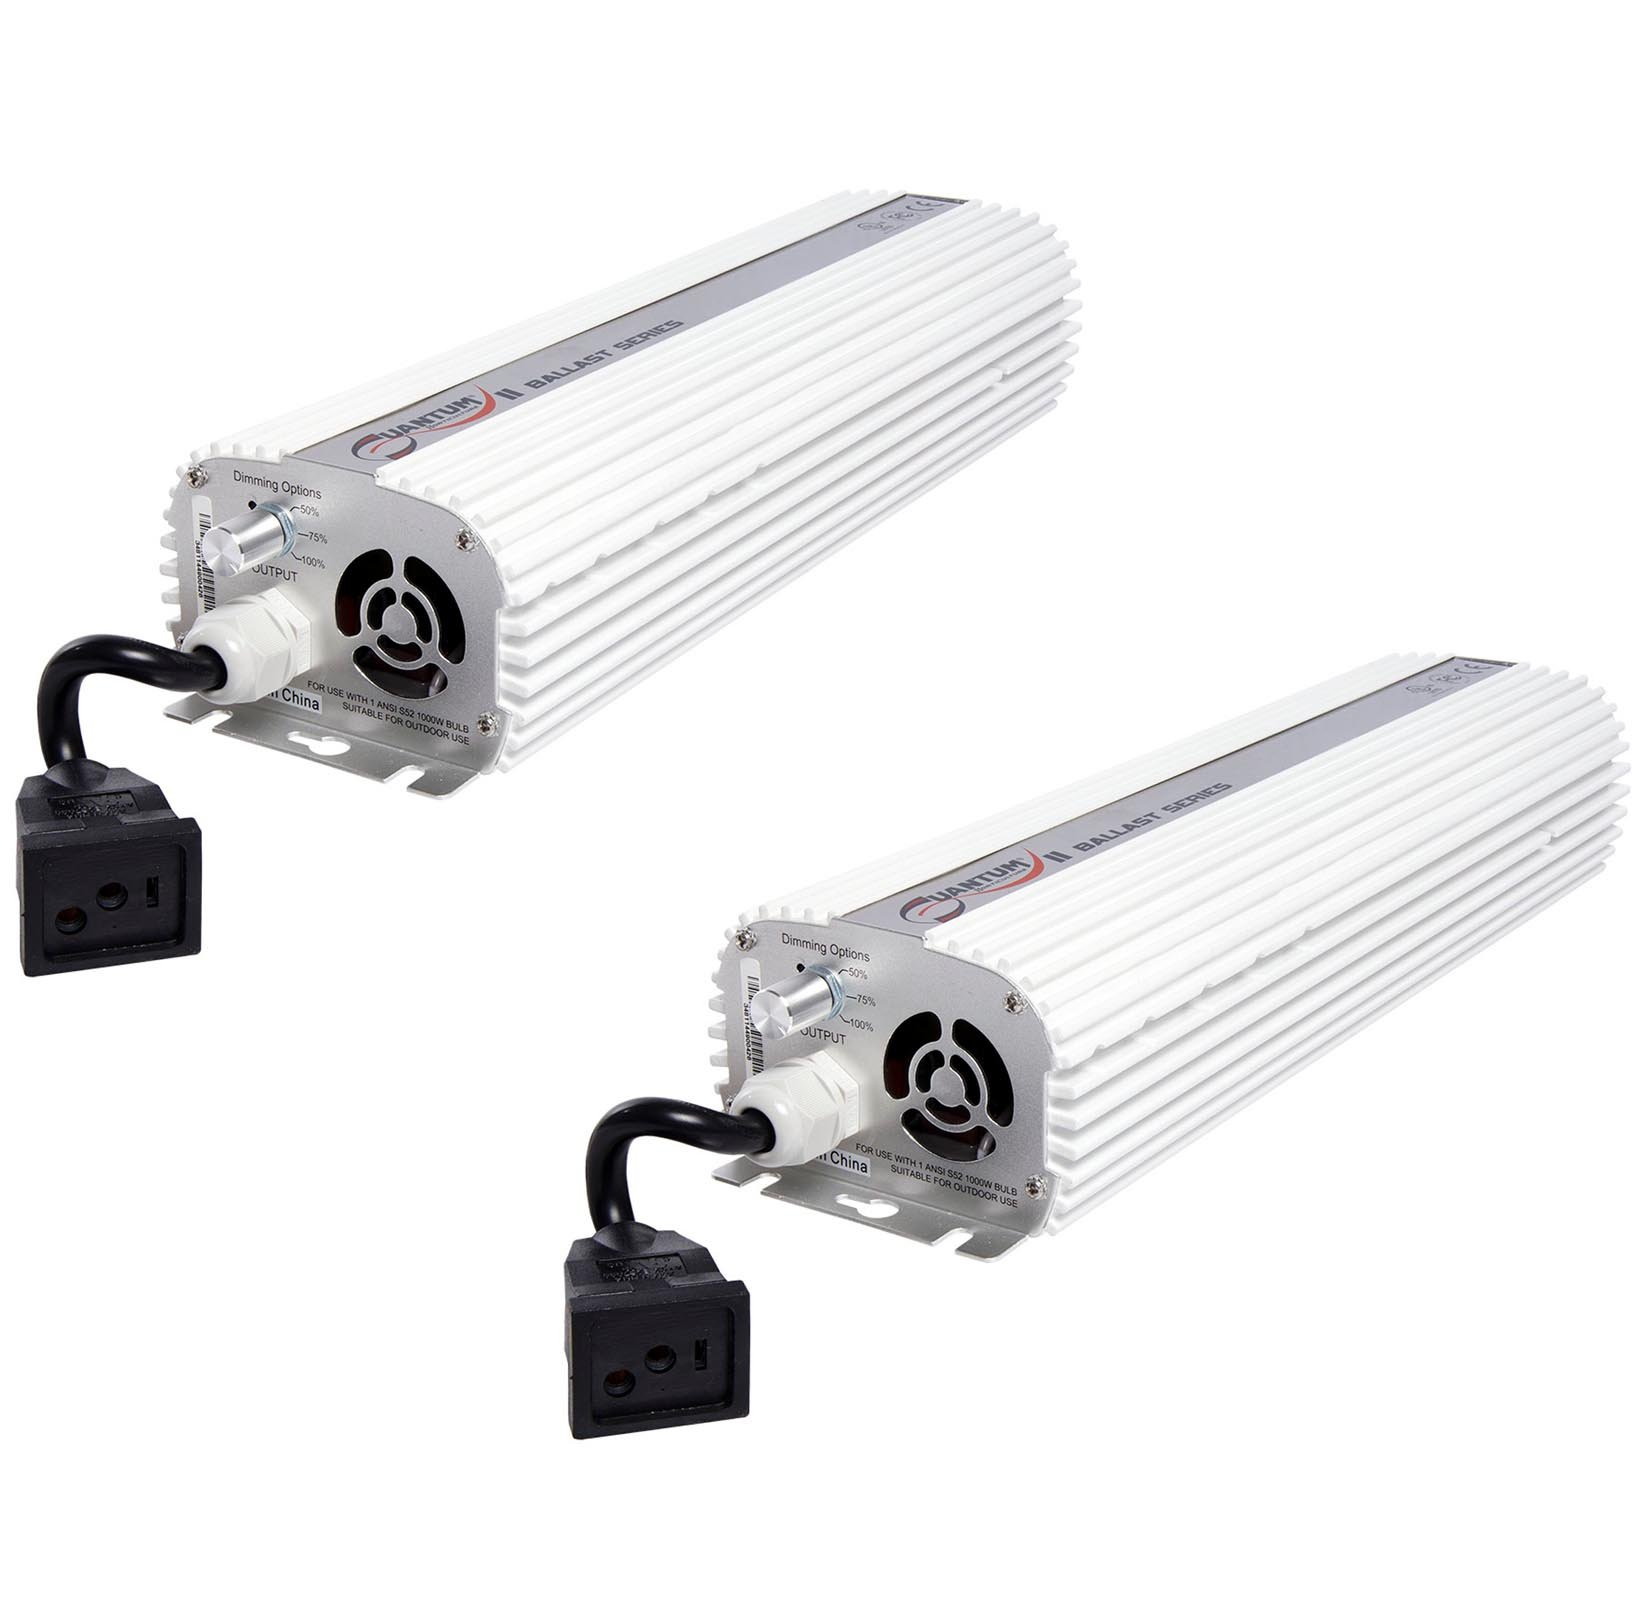 (2) QUANTUM 1000W Watt HPS & MH Dimmable Digital Grow Light Ballasts | QT1000 by Quantum Horticulture